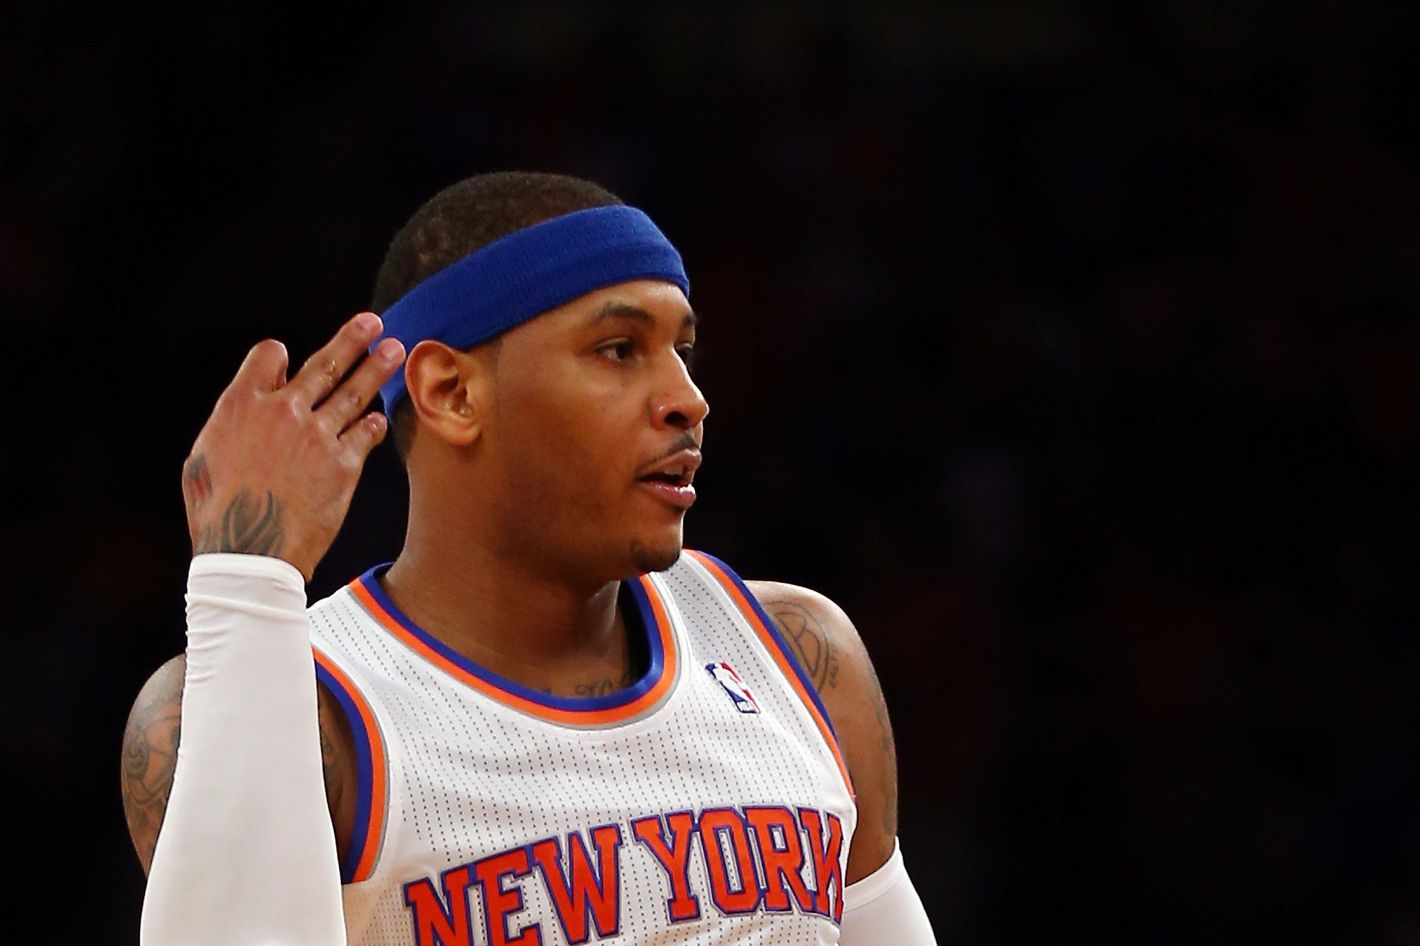 NEW YORK, NY - APRIL 20:  Carmelo Anthony #7 of the New York Knicks celebrates his three point shot in the first half against the Boston Celtics during Game One of the Eastern Conference Quarterfinals of the 2013 NBA Playoffs on April 20, 2013 at Madison Square Garden in New York City. NOTE TO USER: User expressly acknowledges and agrees that, by downloading and/or using this photograph, user is consenting to the terms and conditions of the Getty Images License Agreement.  (Photo by Elsa/Getty Images)